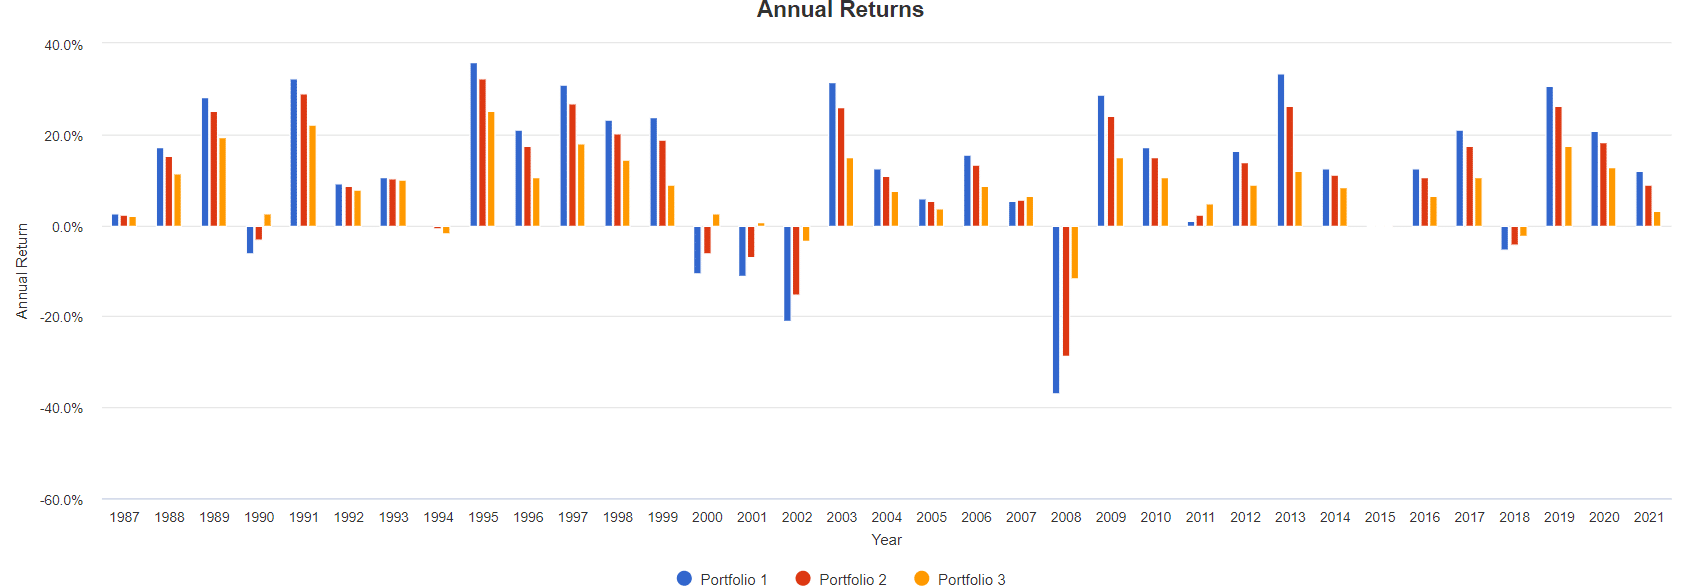 Annual Returns ETF